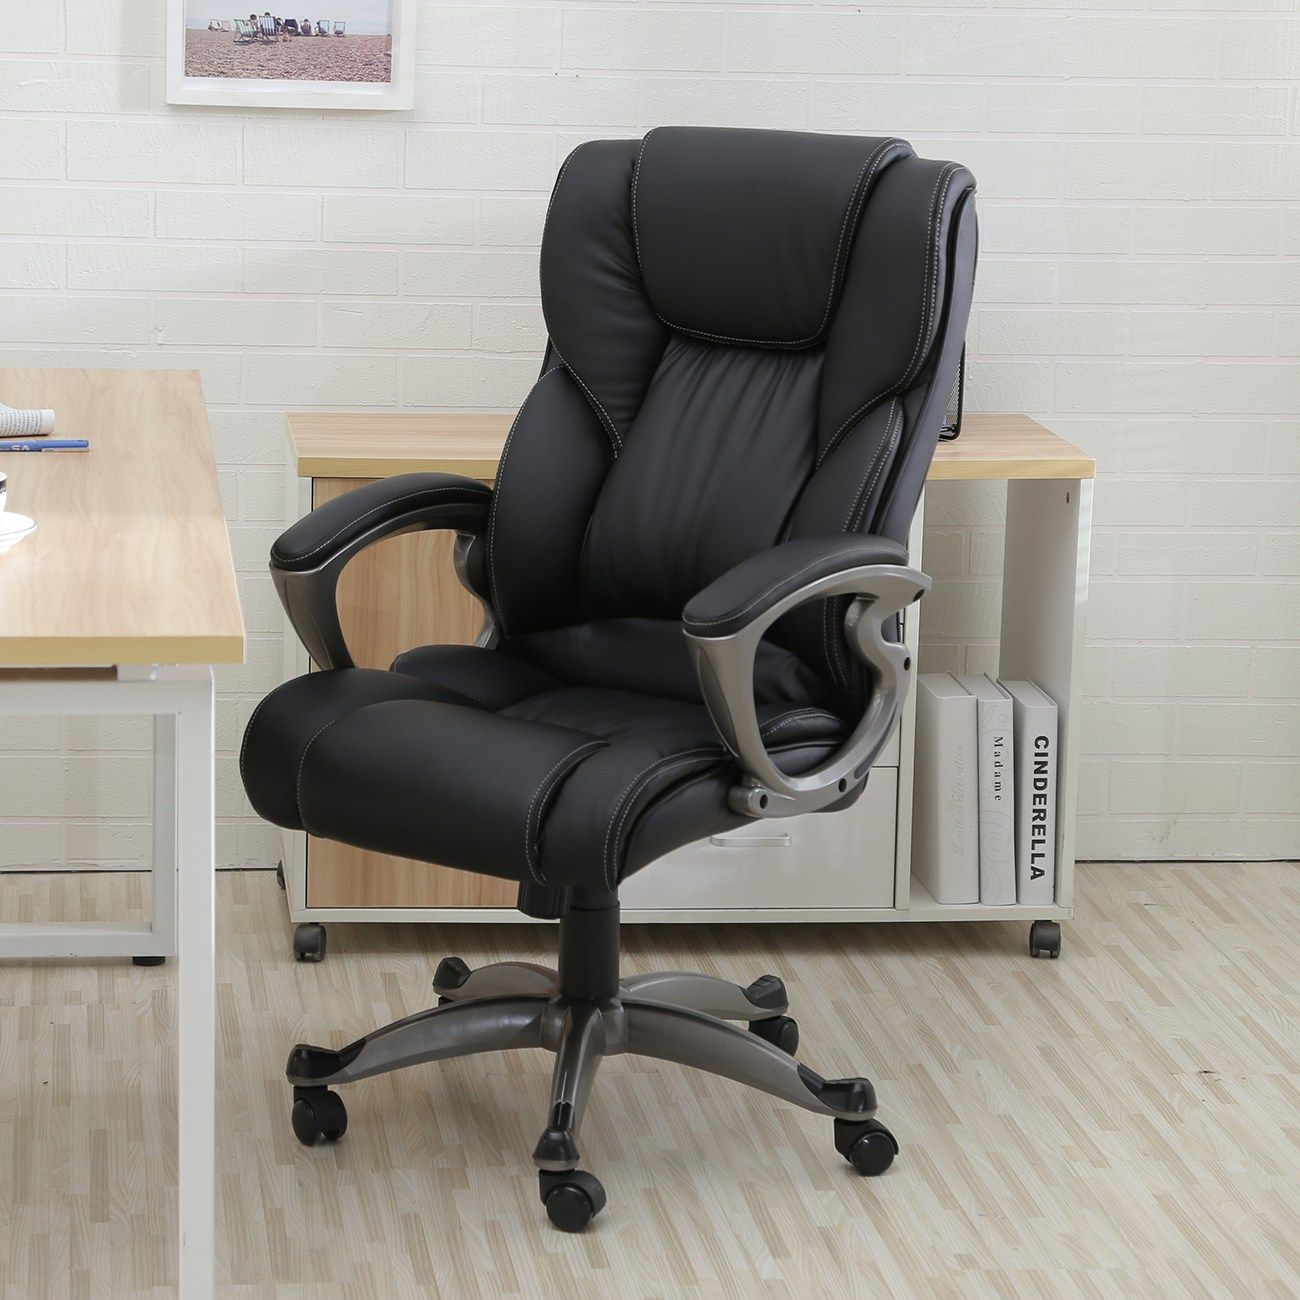 How to choose a computer chair 6